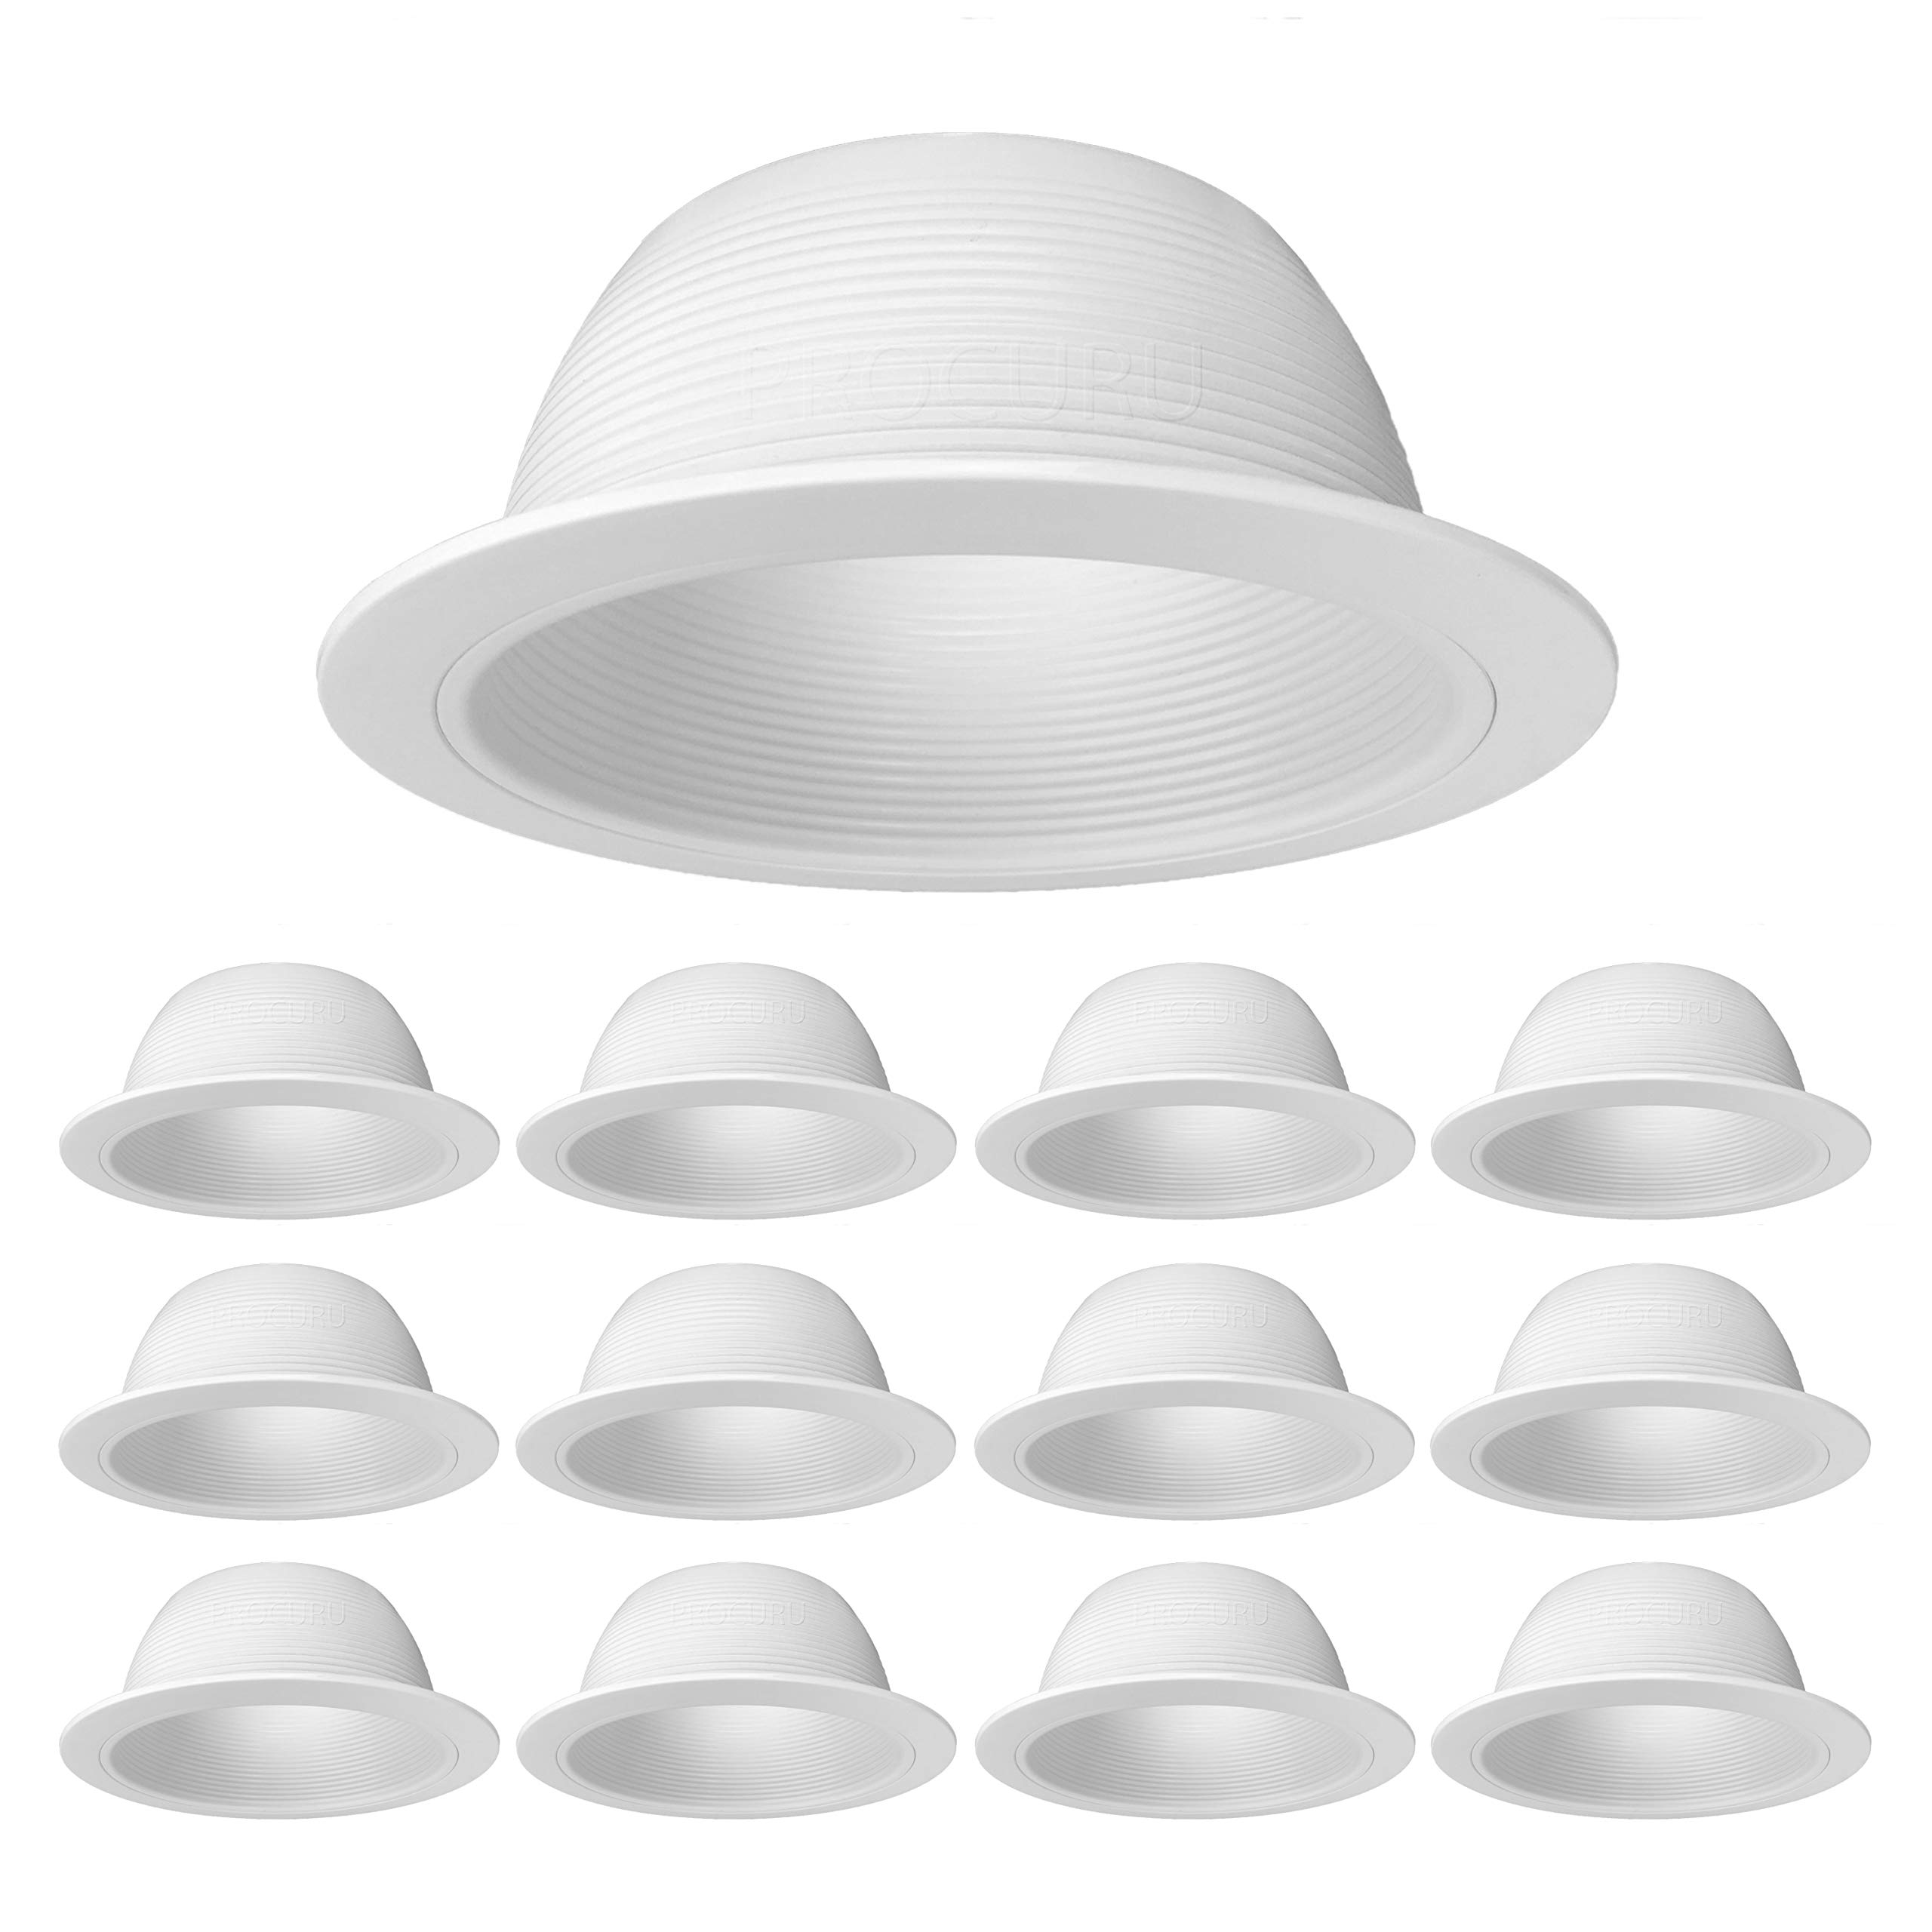 [12-Pack] PROCURU 6'' White Baffle Metal Recessed Can Light Trim - for BR30/38/40, PAR30/38/40 LED, Incandescent, CFL, Halogen (White (12-Pack))